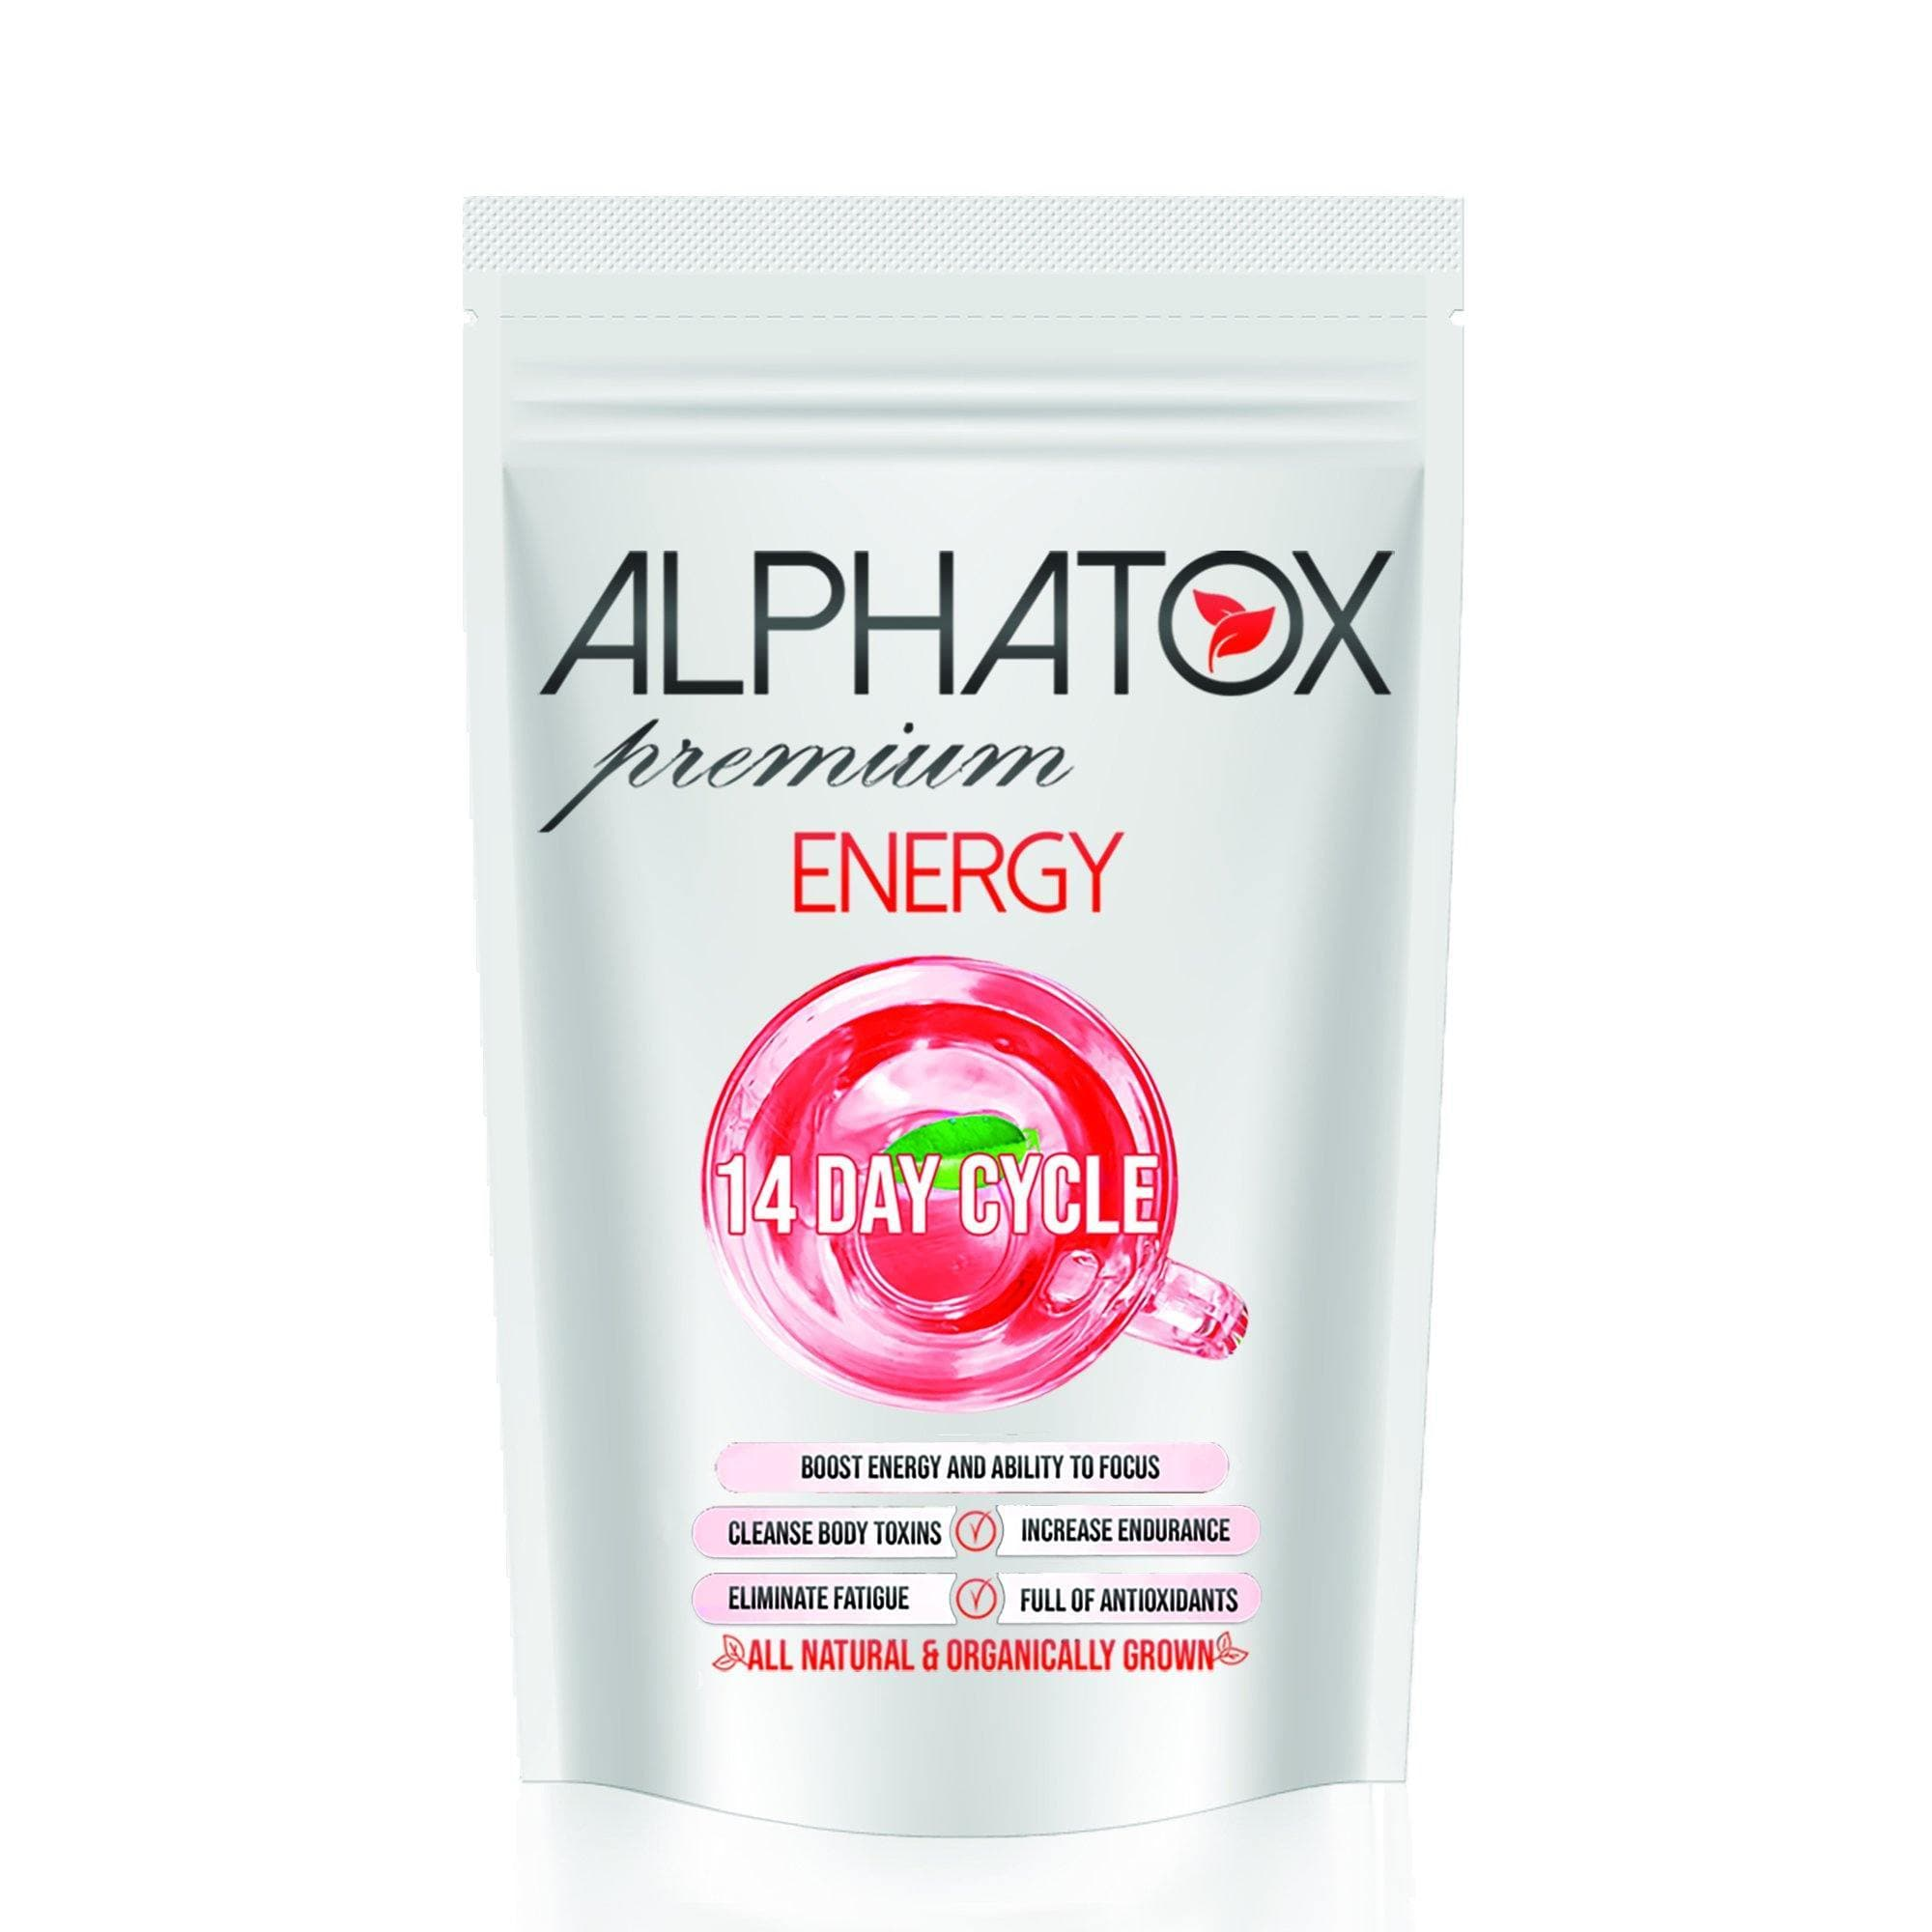 Alphatox Energy and Focus Tea ( 14 Day ) - Alphatox Premium Fitness Teas